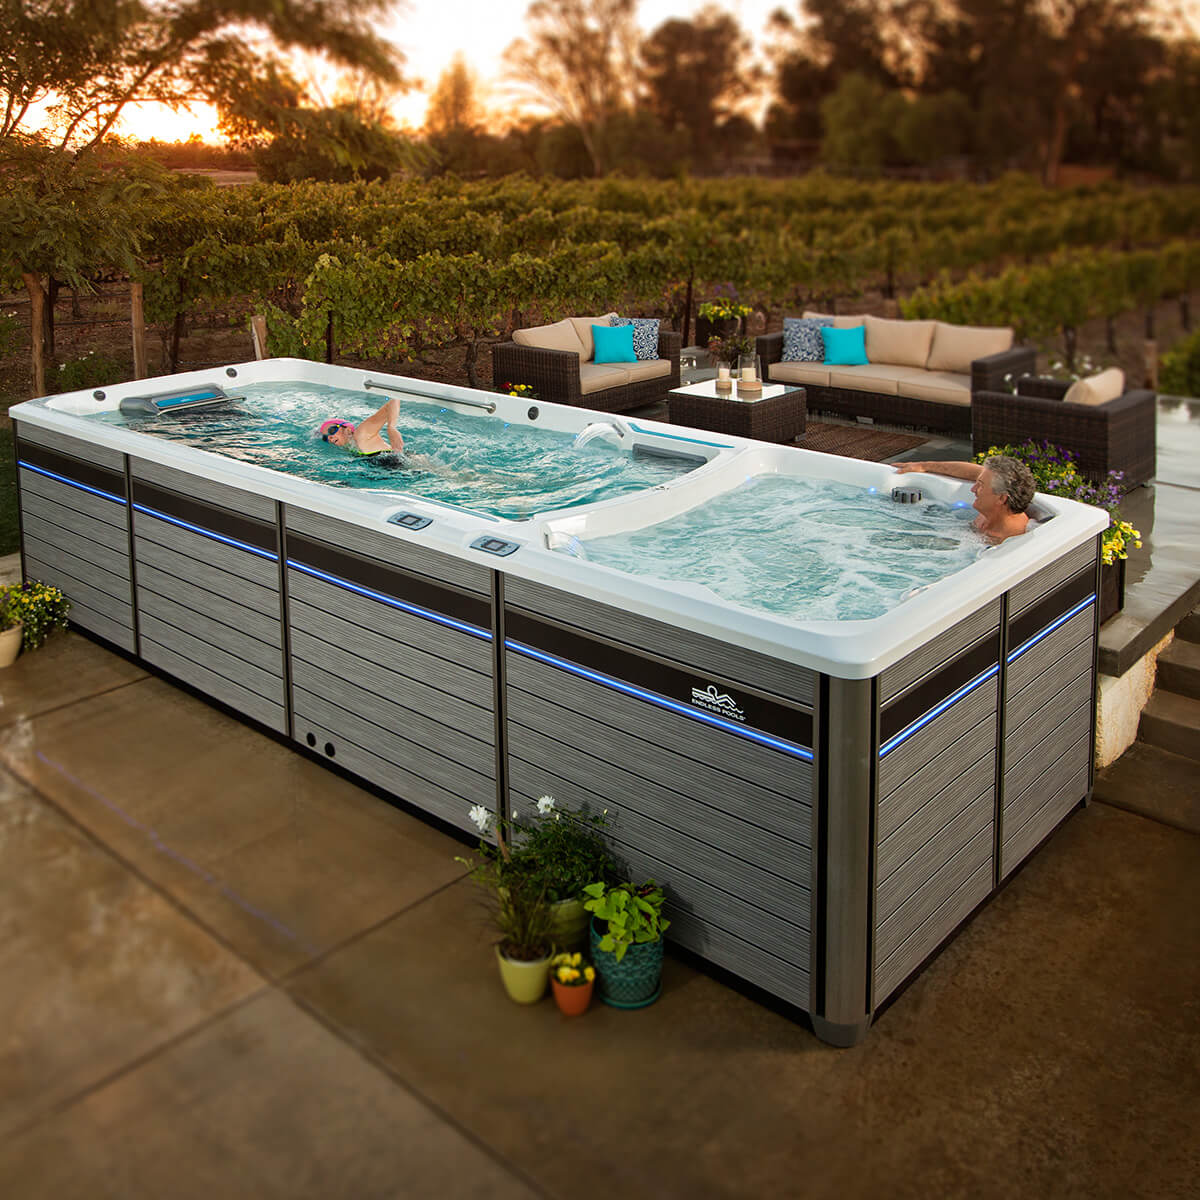 Forget the Pool. You need a Swim Spa! - Lake Air Pool Supply